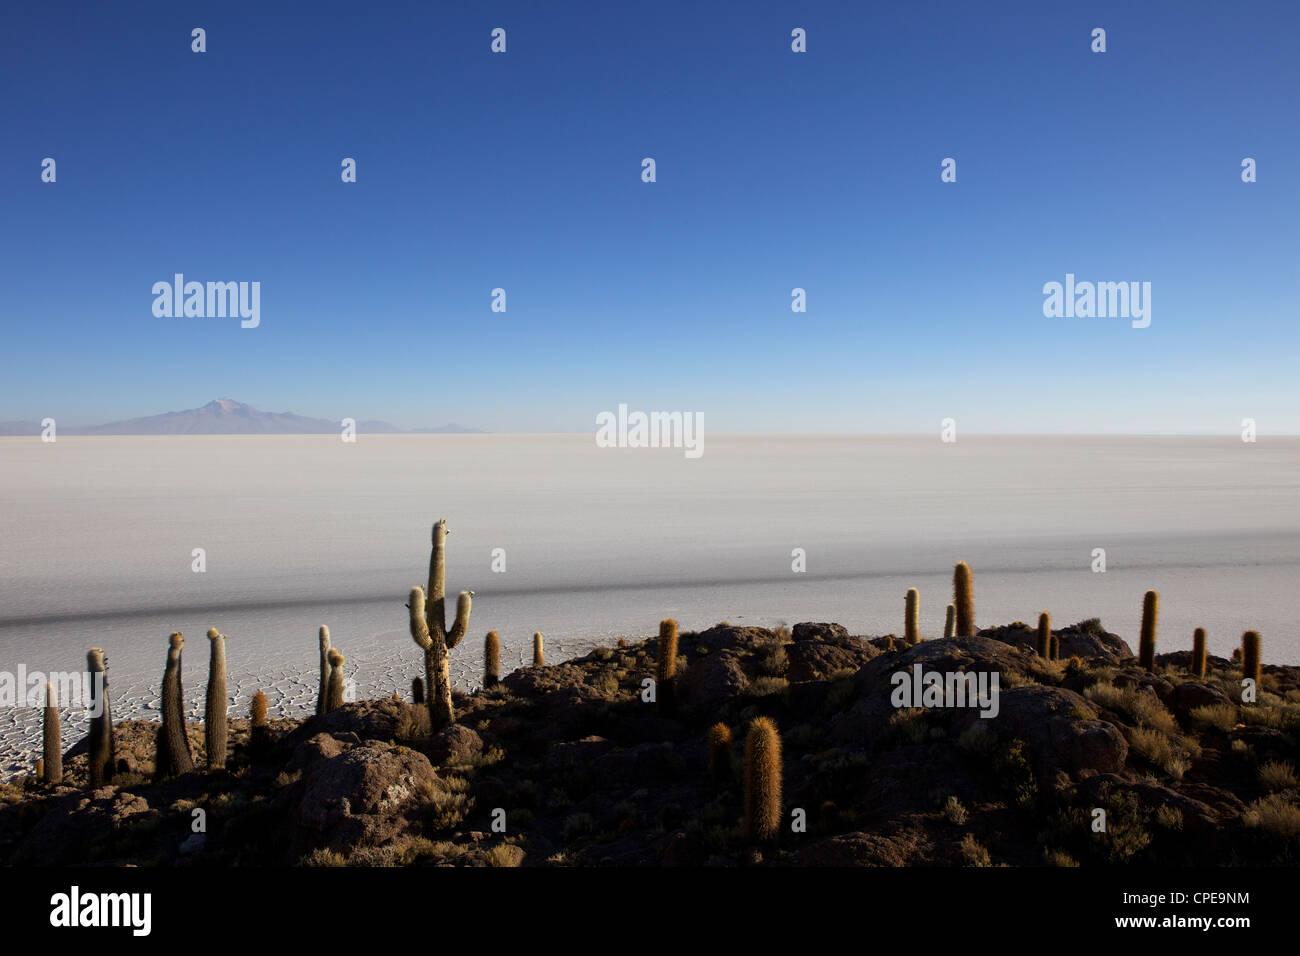 Cacti on Isla de los Pescadores, and salt flats, Salar de Uyuni, Southwest Highlands, Bolivia, South America - Stock Image